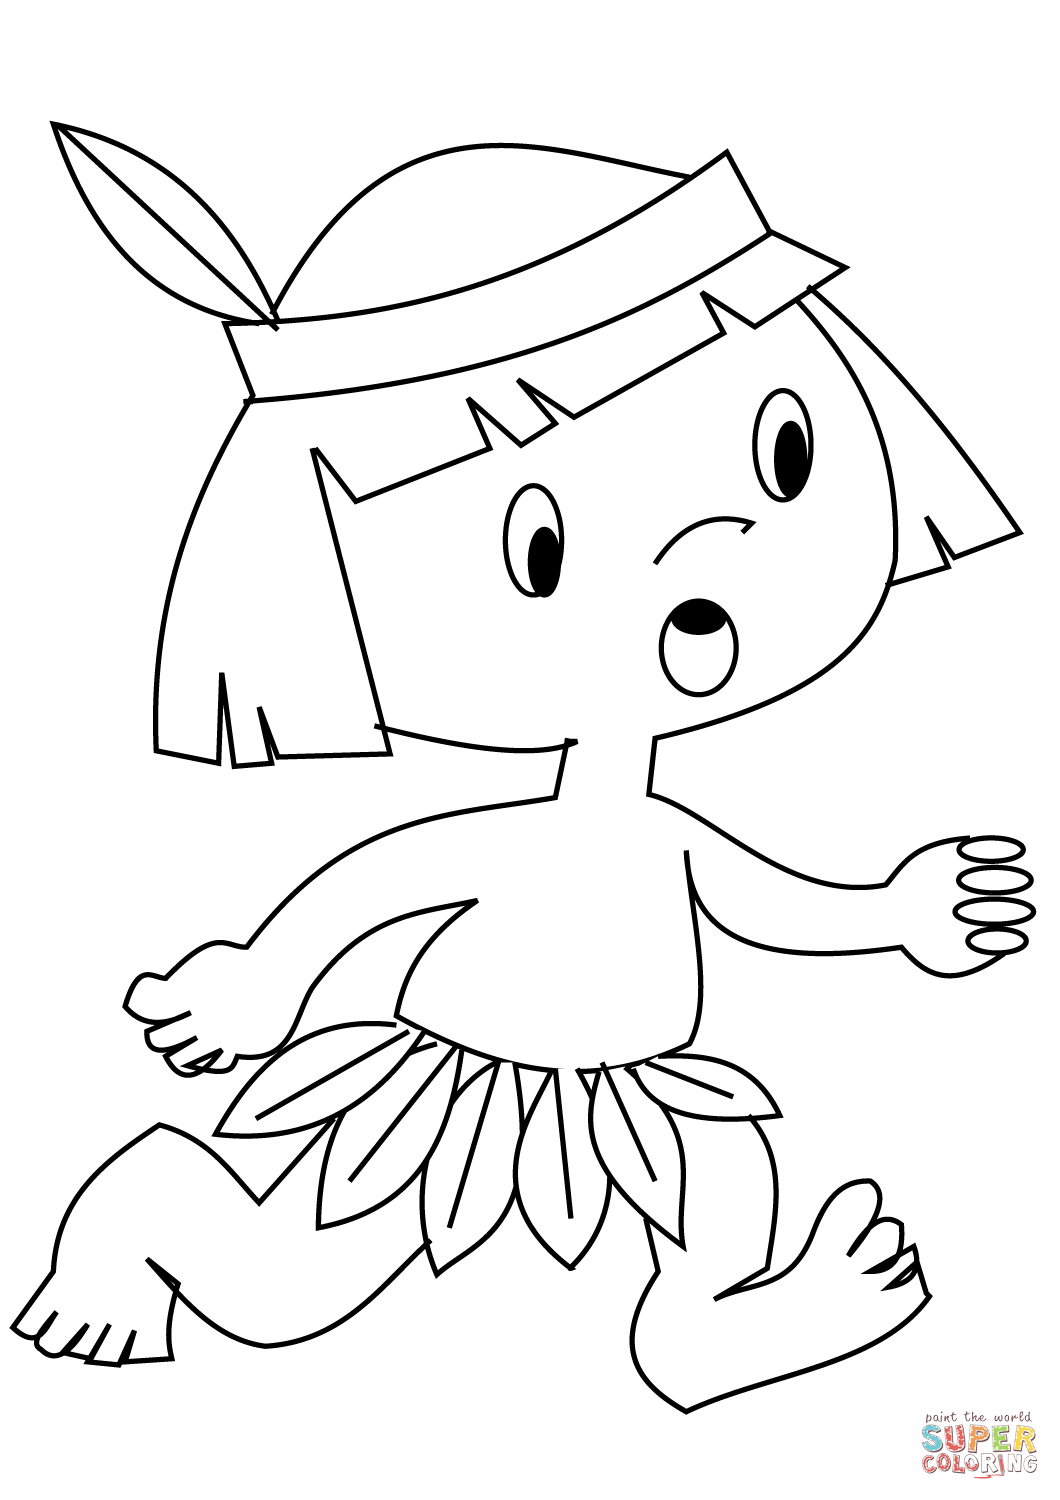 indian coloring page native american indian coloring pages page indian coloring